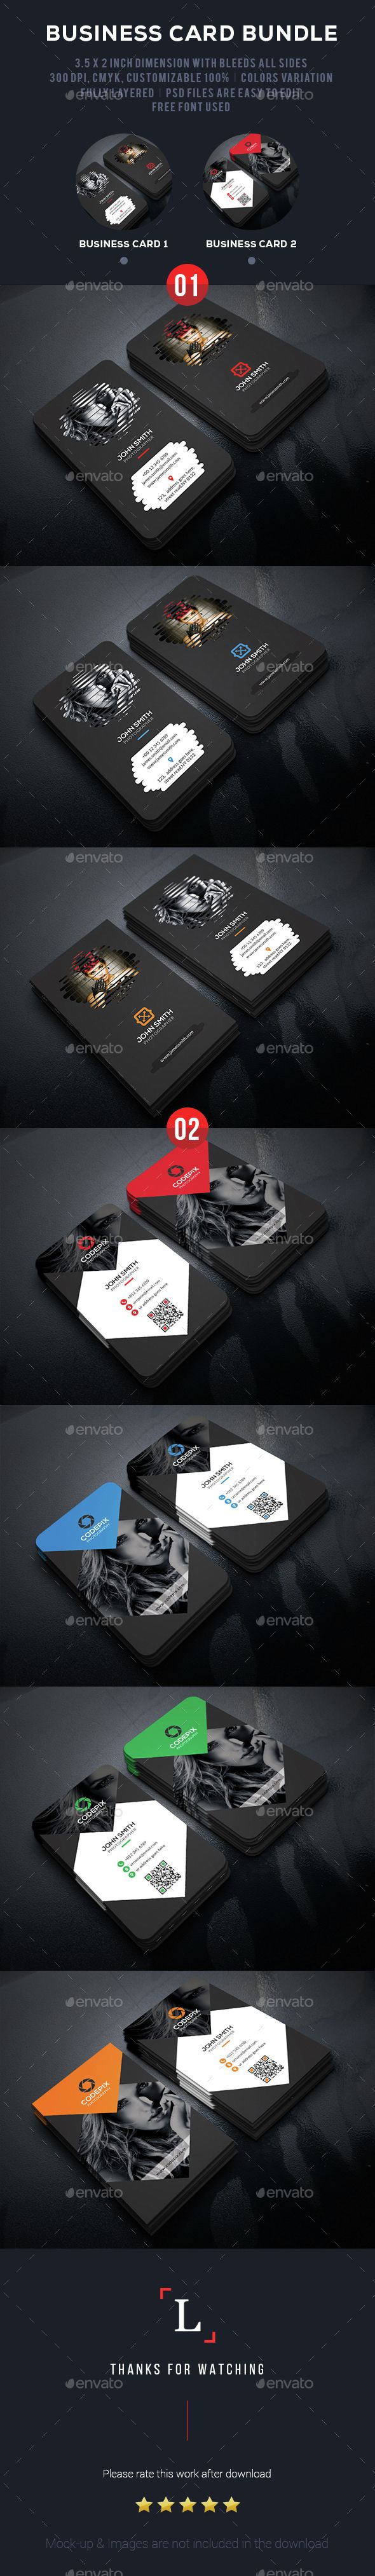 Best Business Card Designs Images On Pinterest Business Card - Photography business cards templates free